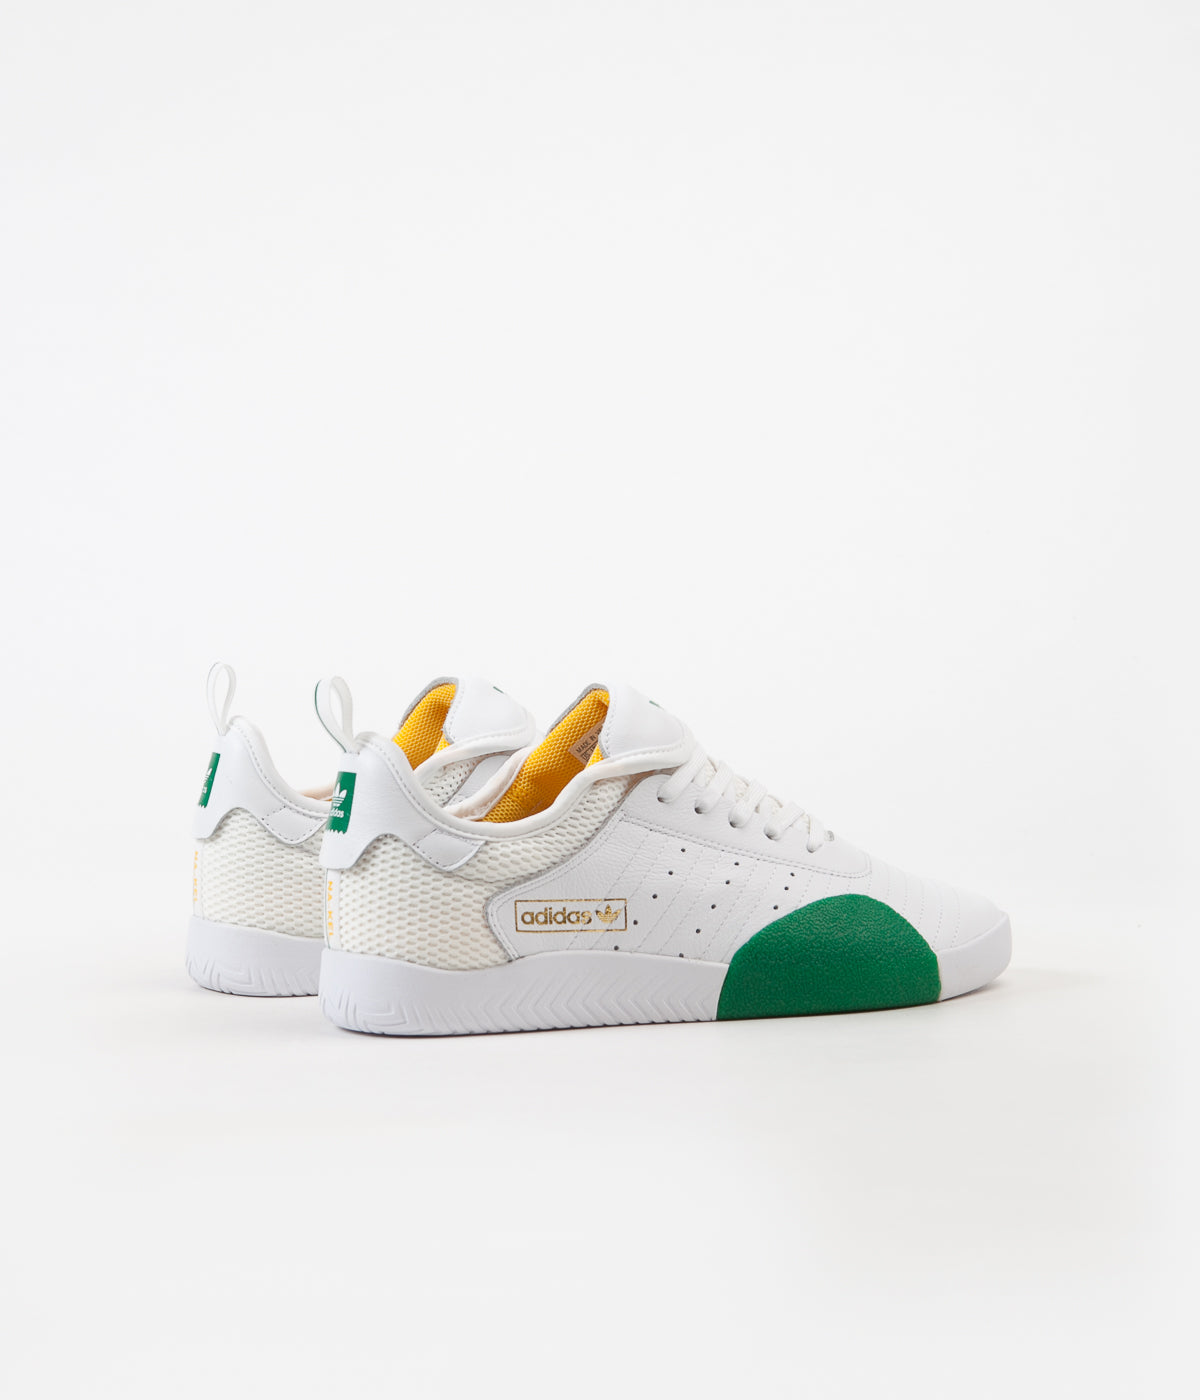 Adidas x Na-Kel 3ST.003 Shoes - Cloud White / Bold Green / Bold Gold